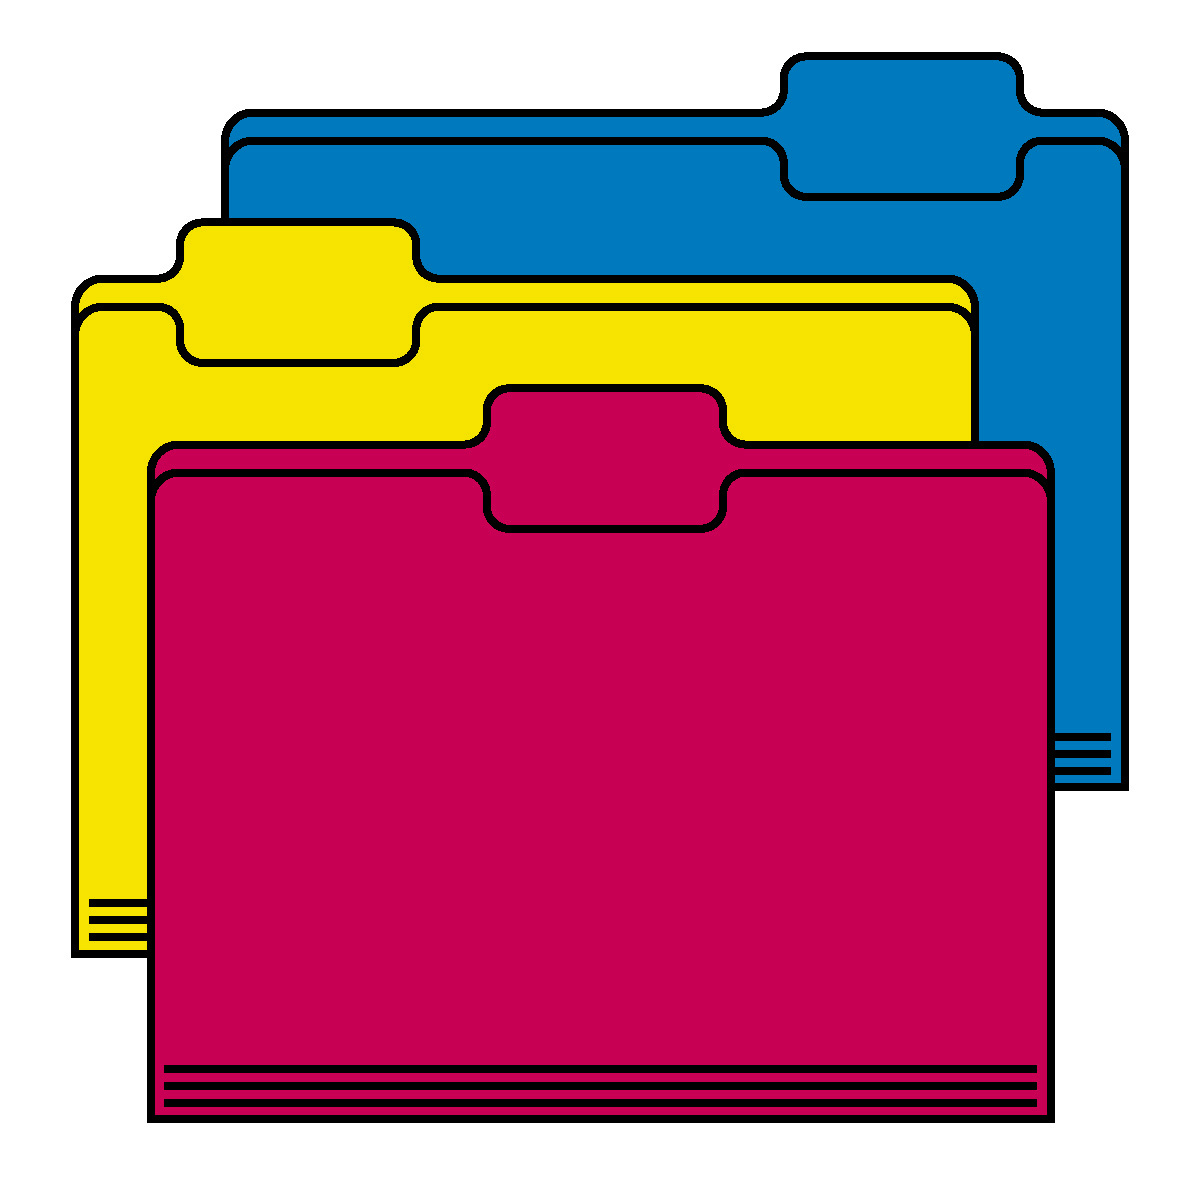 Free Classroom Objects Clipart, Download Free Clip Art, Free.